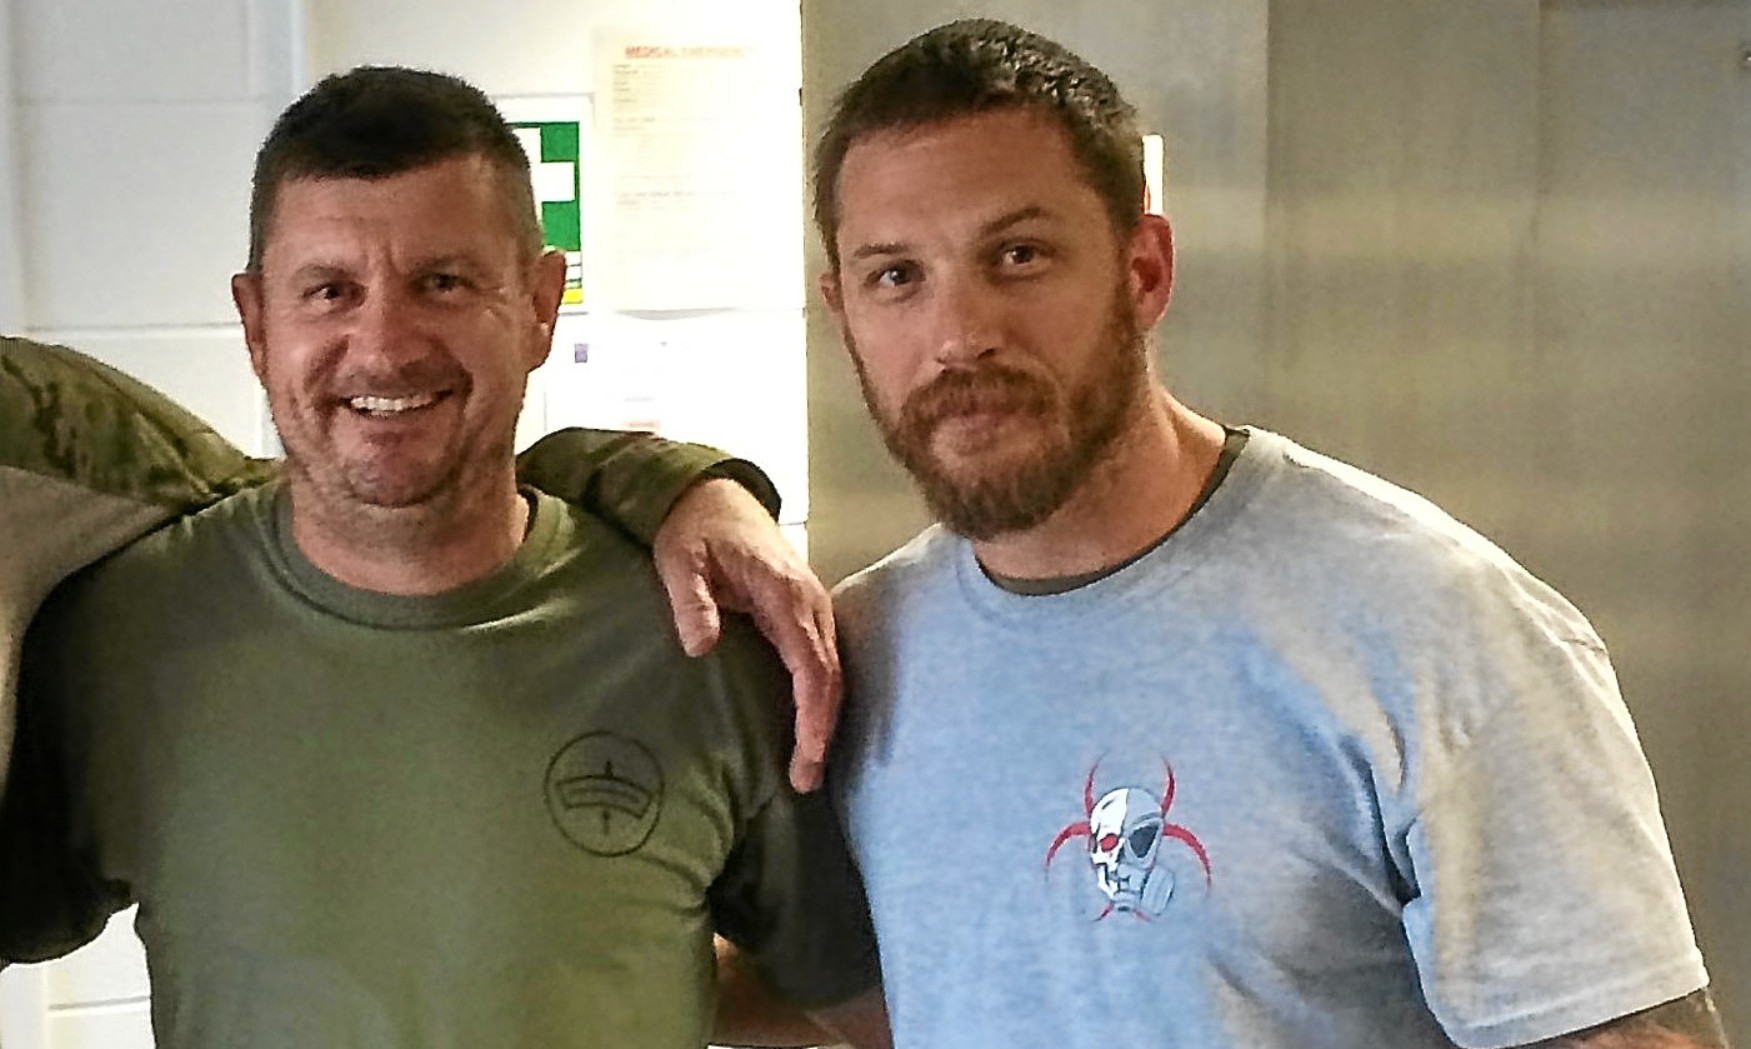 Paul Barrett of IED Training of Carnoustie with Tom Hardy